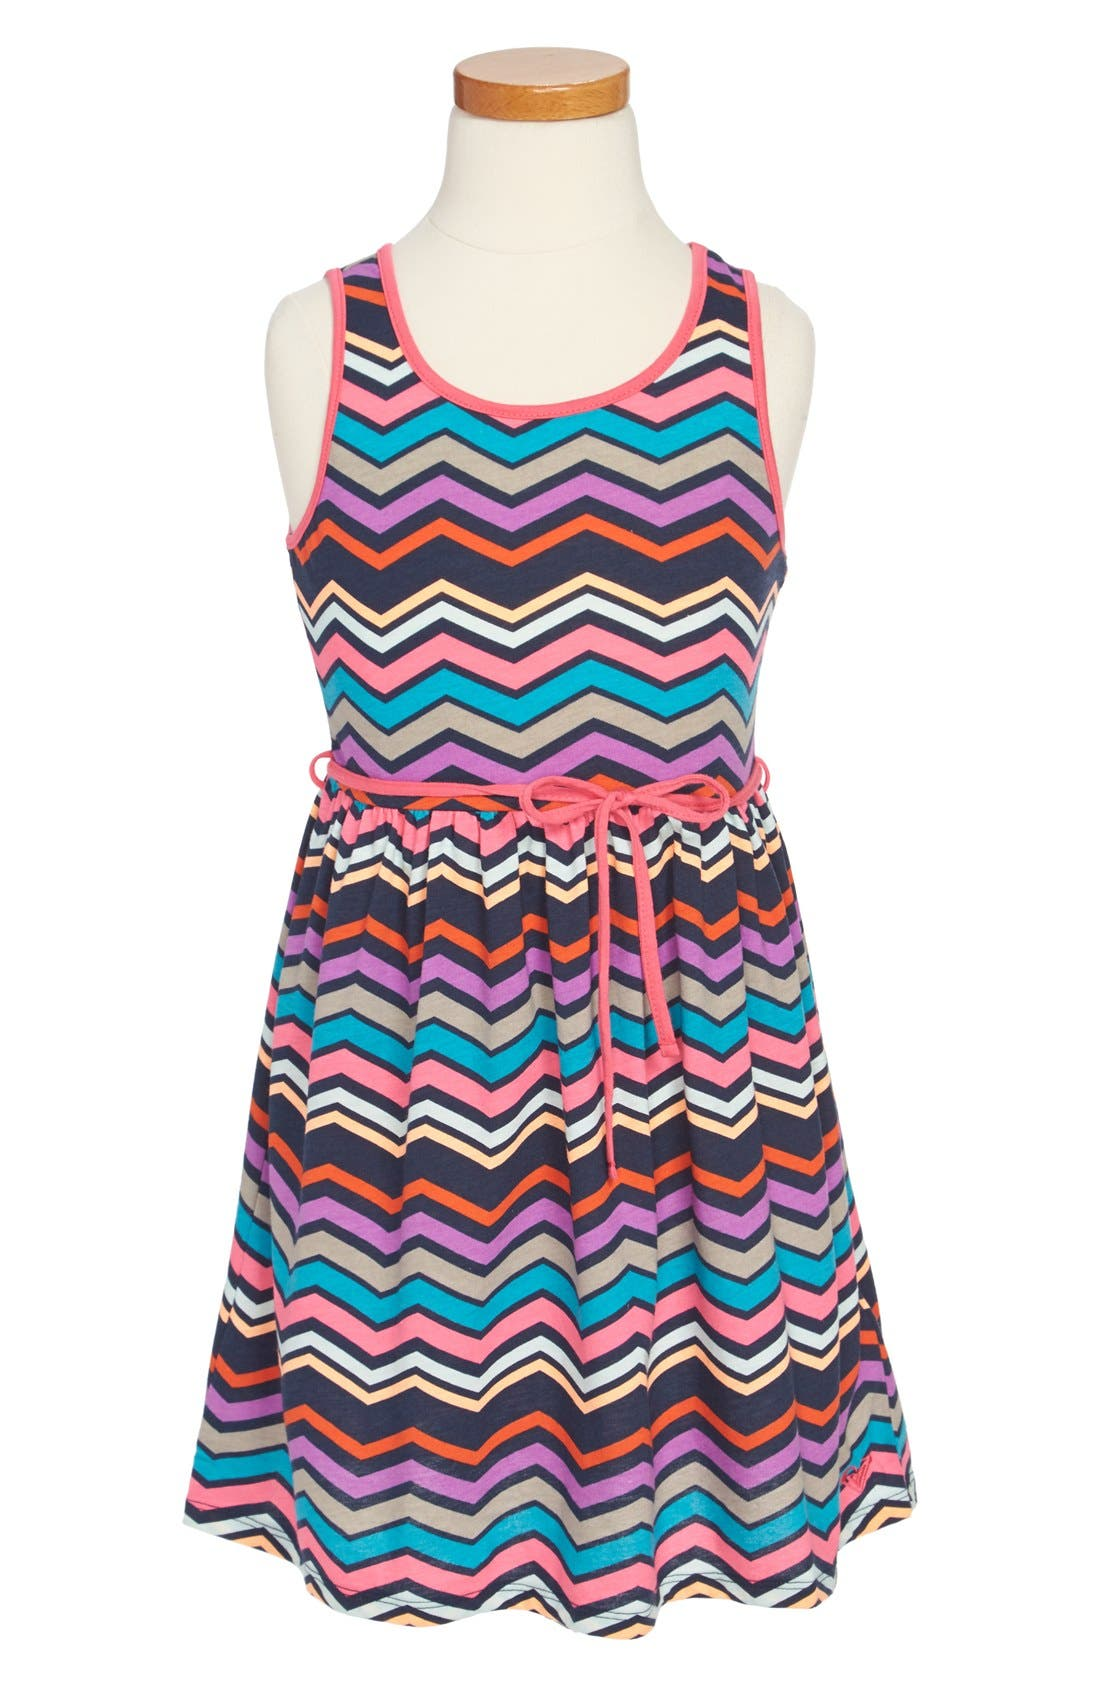 Alternate Image 1 Selected - Roxy 'Sweltering Heart' Tank Dress (Toddler Girls)